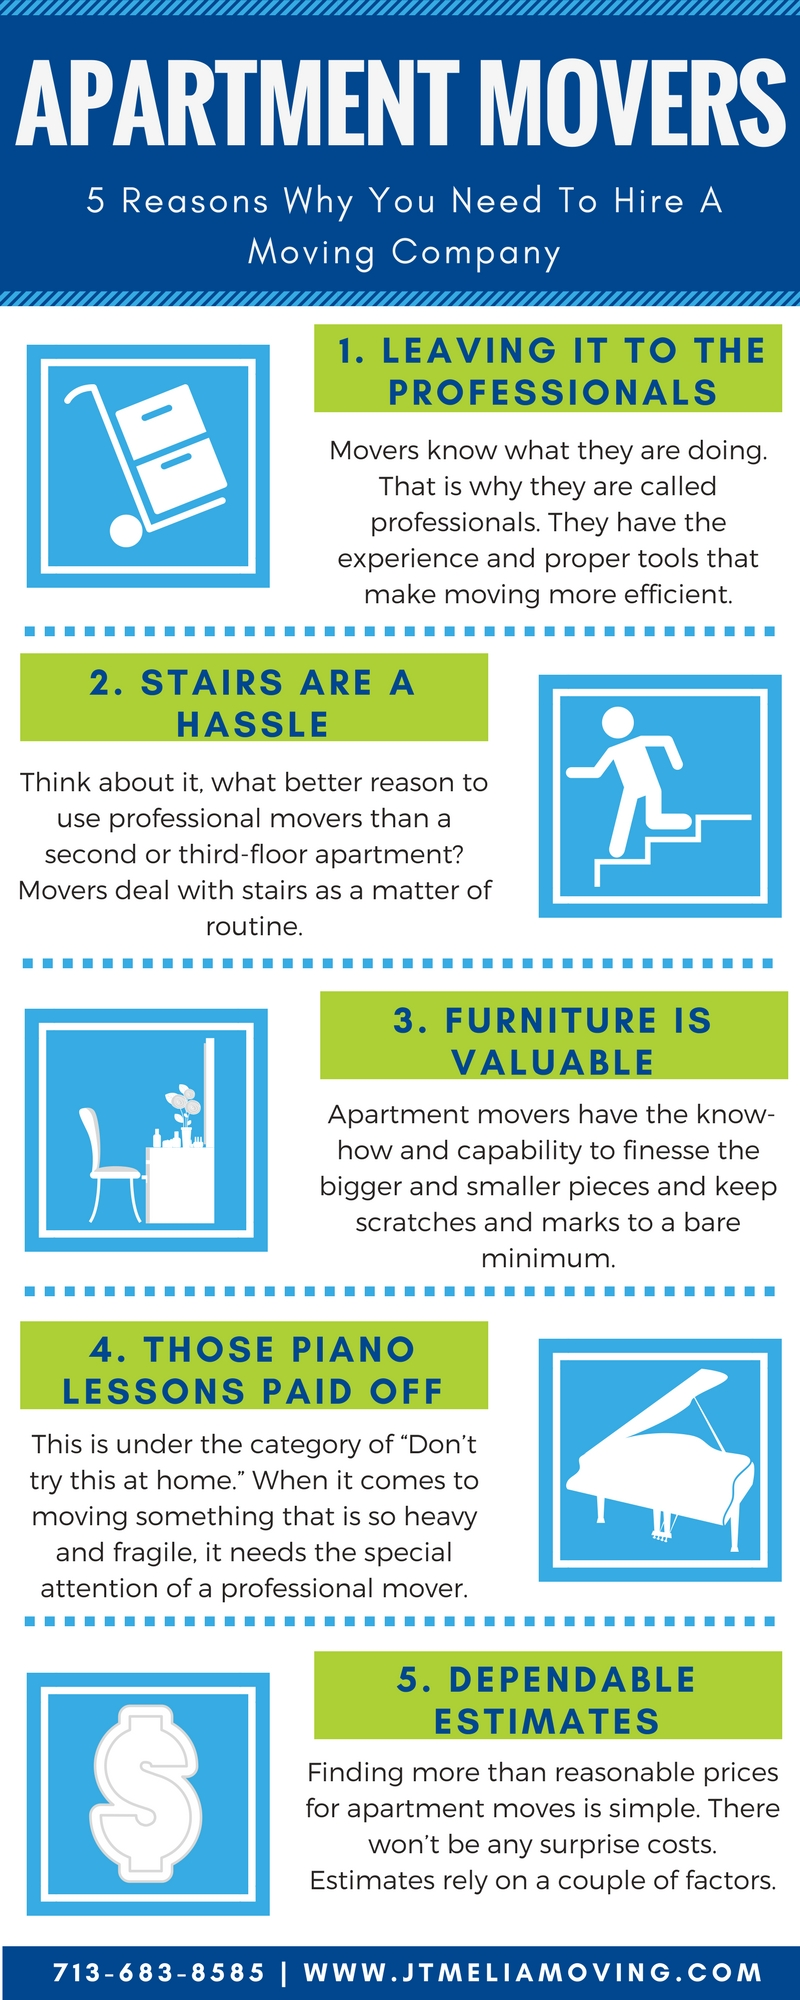 5 Reasons You Need A Moving Company To Move Your Apartment